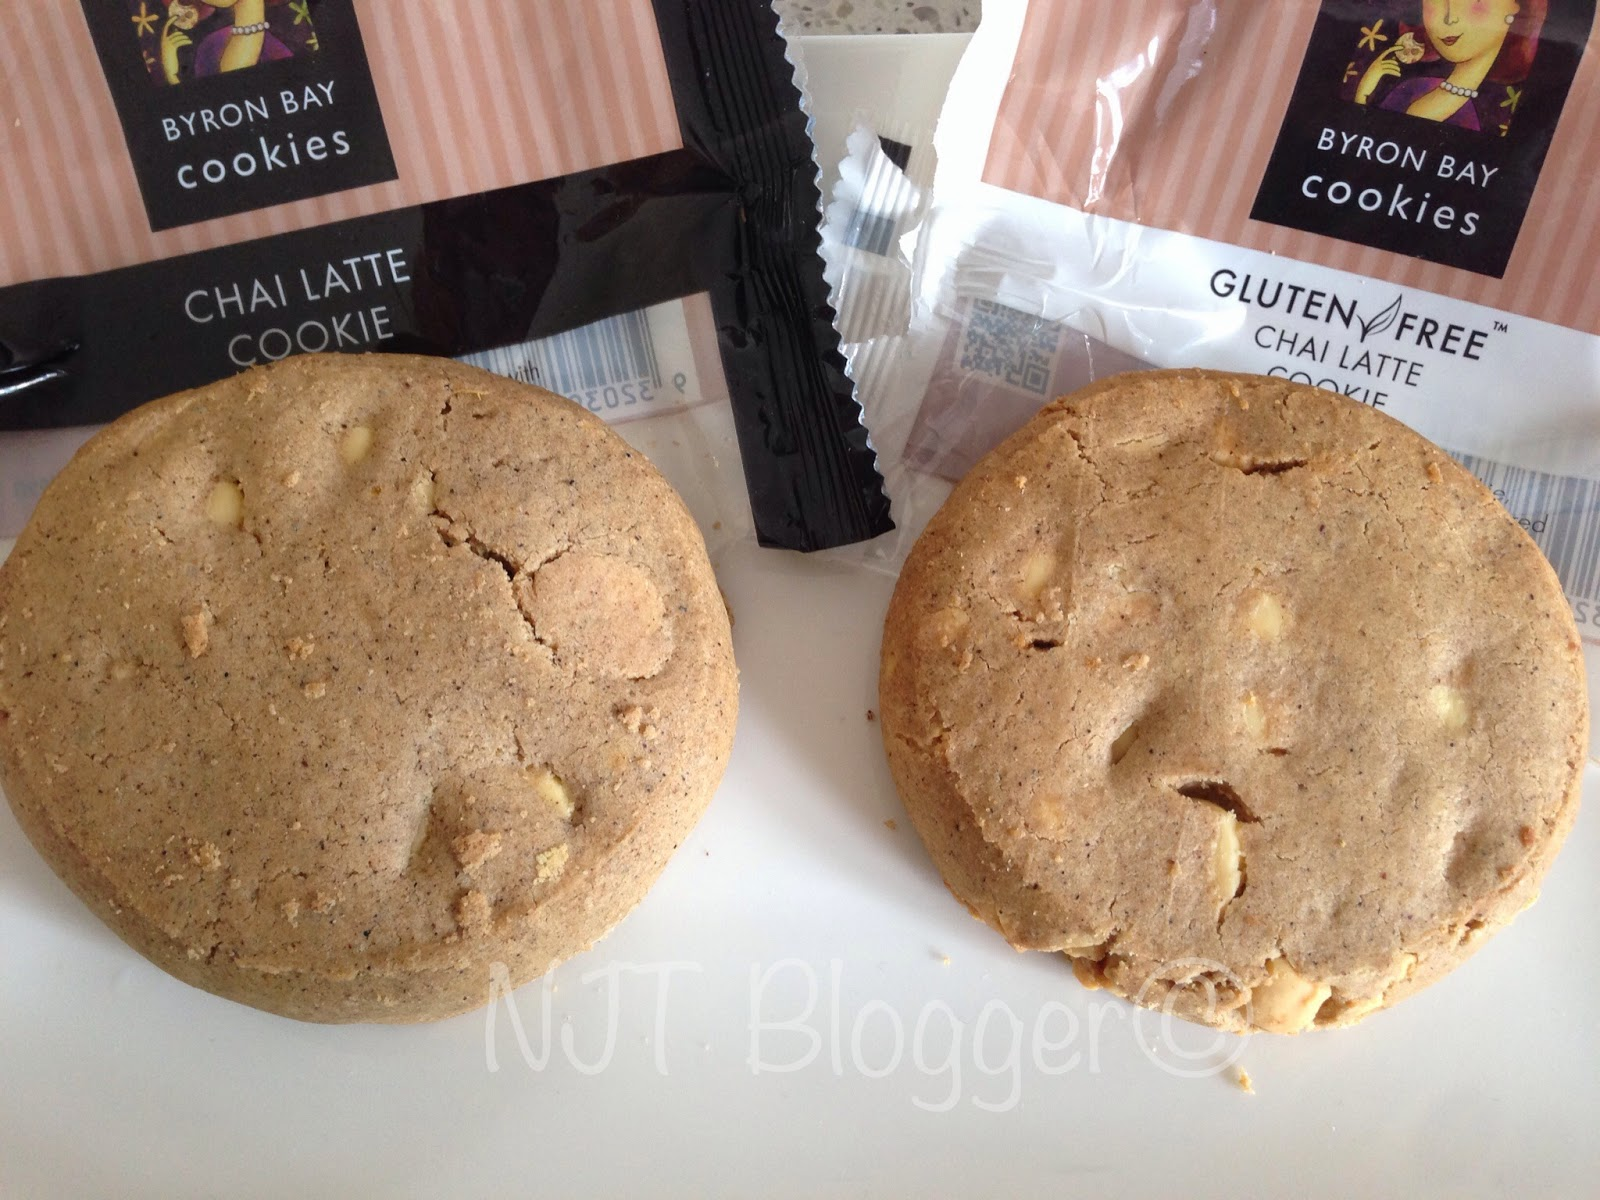 Byron Bay Chai Latte Cookies REVIEW